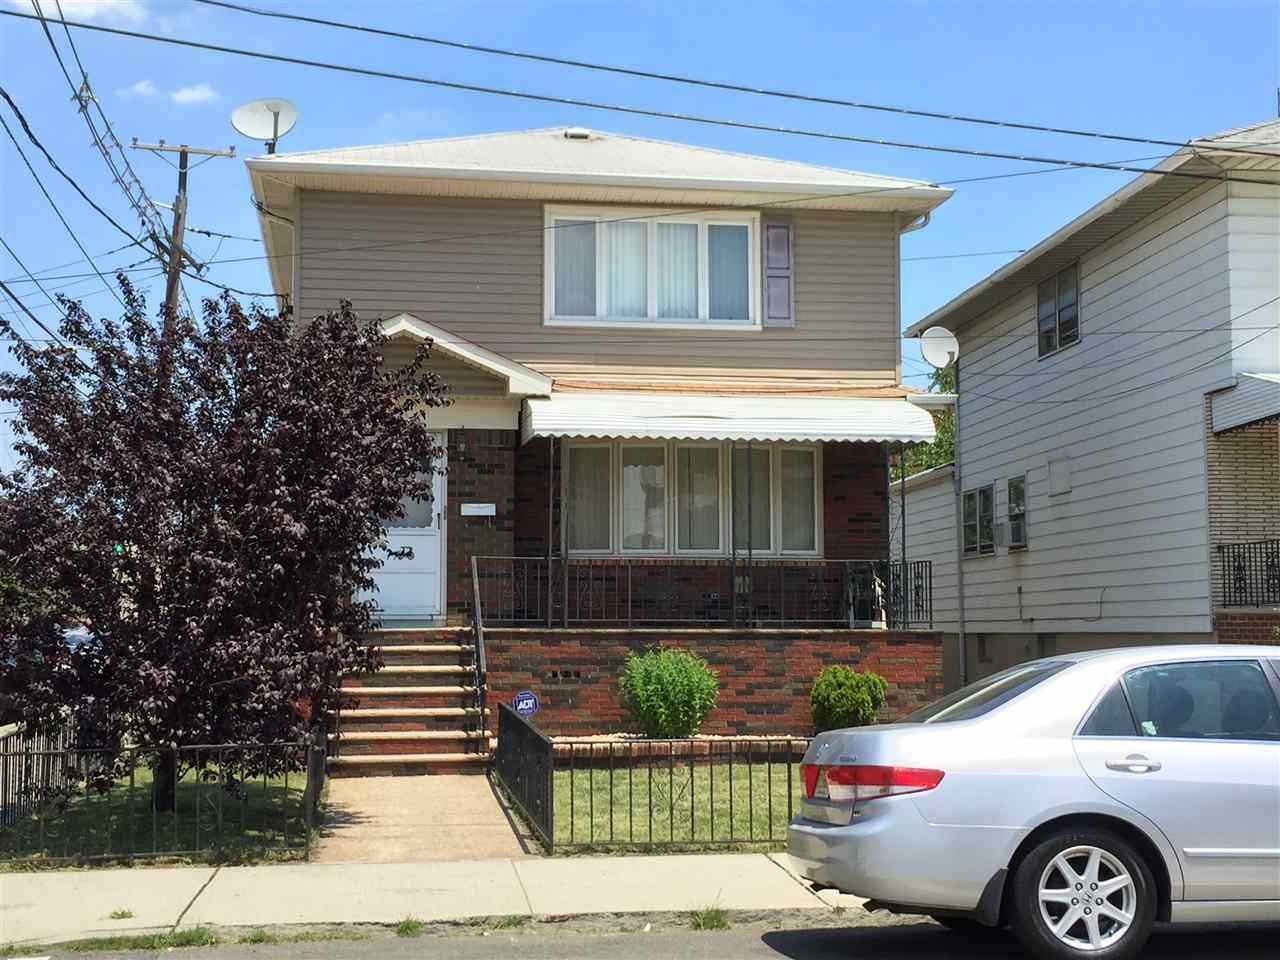 Two Family for Rent at 420 Van Nostrand Avenue #2 Jersey City, New Jersey 07305 United States